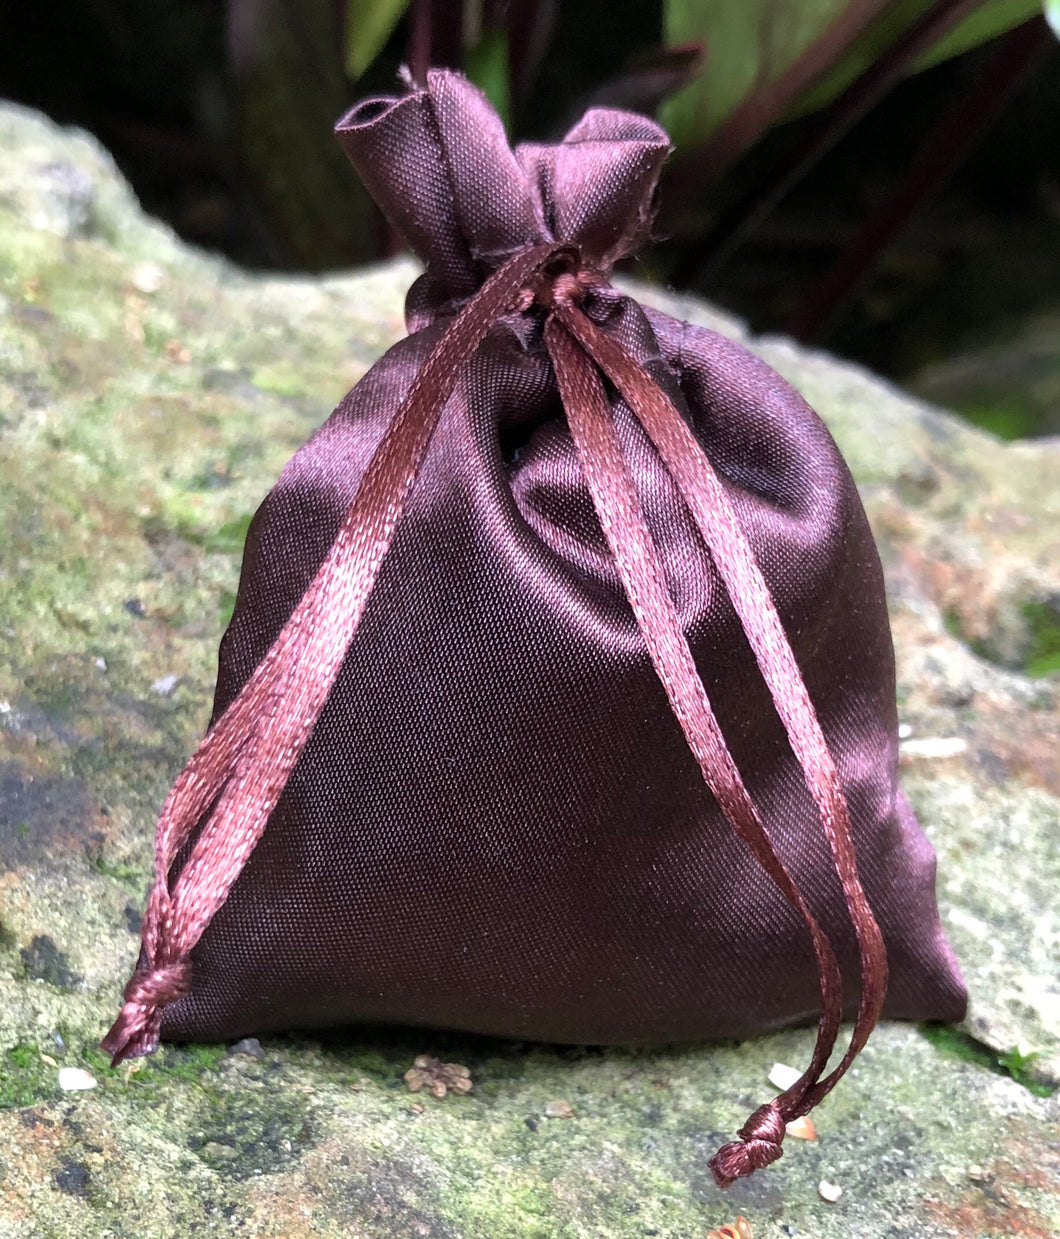 This Dark Brown Satin Lavender Sachet is useful in diminishing stress, easily fits in a drawer, purse, gym bag, or locker and makes a unique gift. The contents of each sachet is Oregon lavender, and only lavender, thus there are no other fillers. Lavender has plenty of its own natural oils, so give it a gentle squeeze to slightly bruise the buds to draw out more fragrance. This sachet should not be heated or put into a microwave oven.